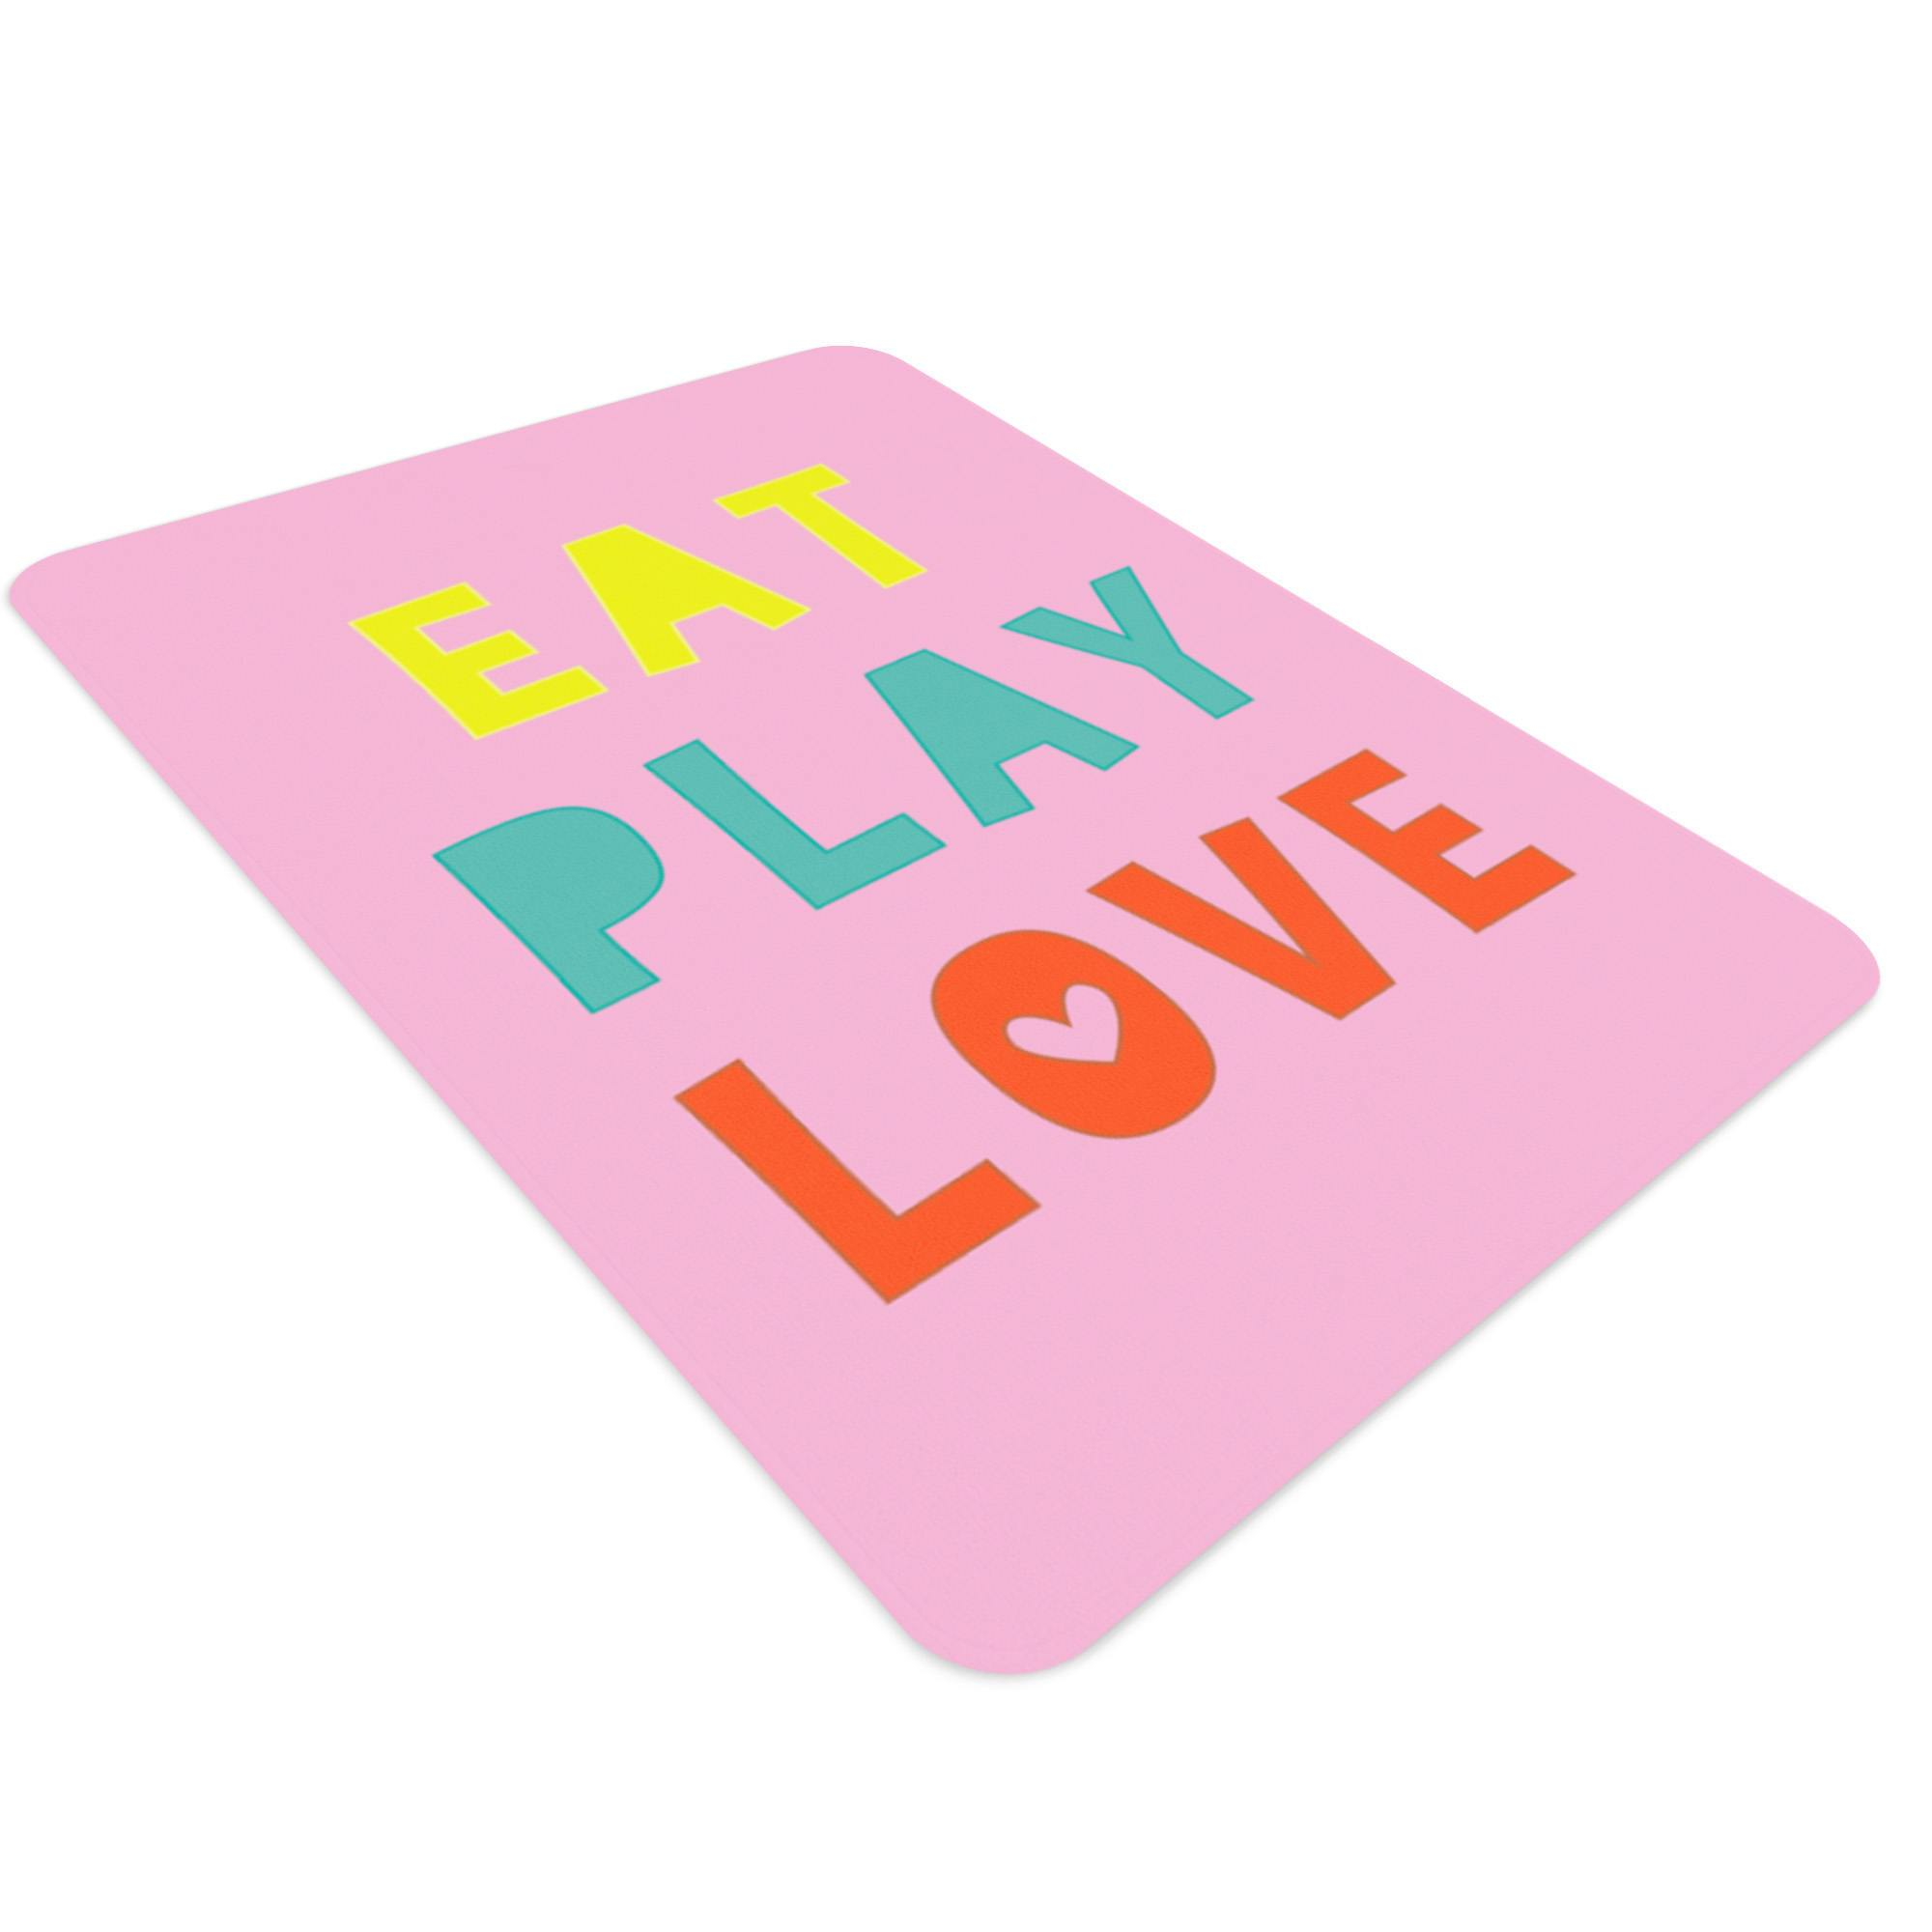 Eat Play Love, Kids Room Rugs, Playroom Rug, Kitchen Rug